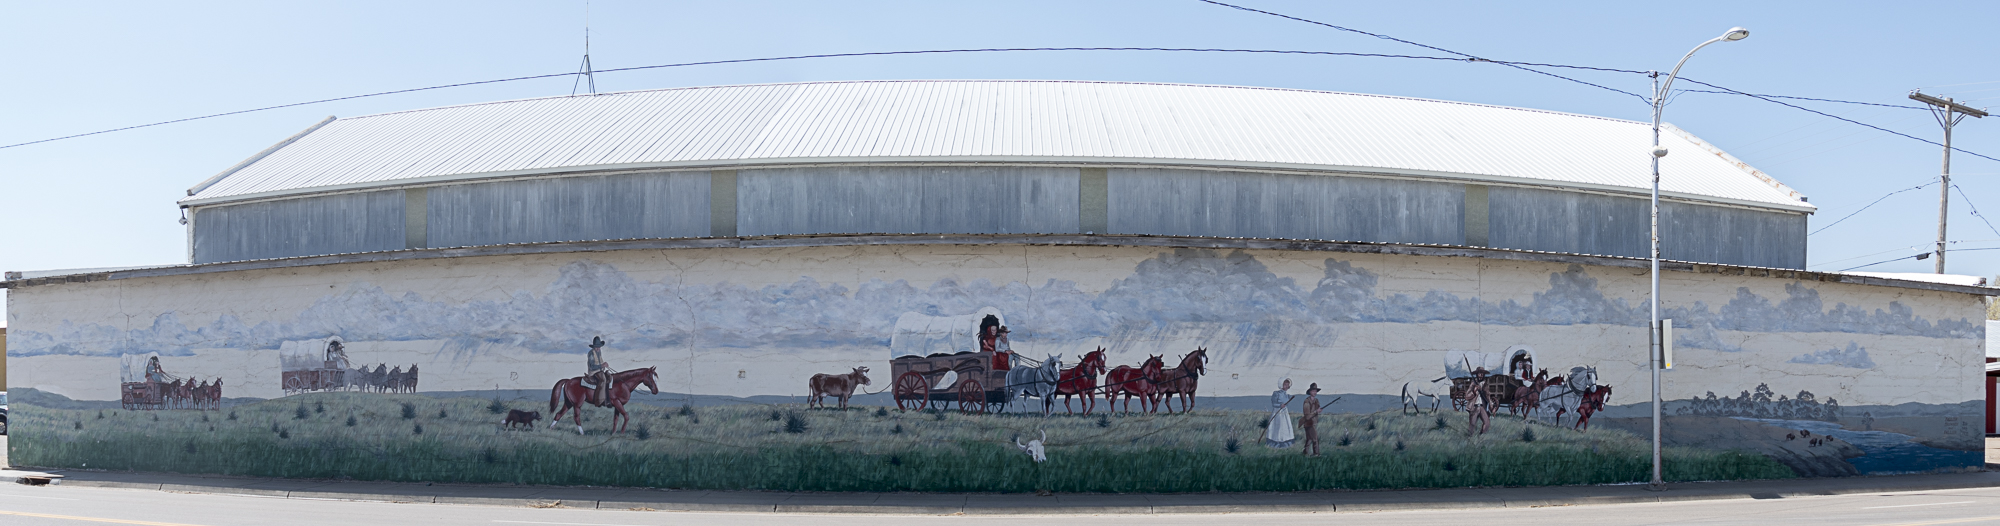 Street mural celebrating the Santa Fe trail in Syracuse, KS